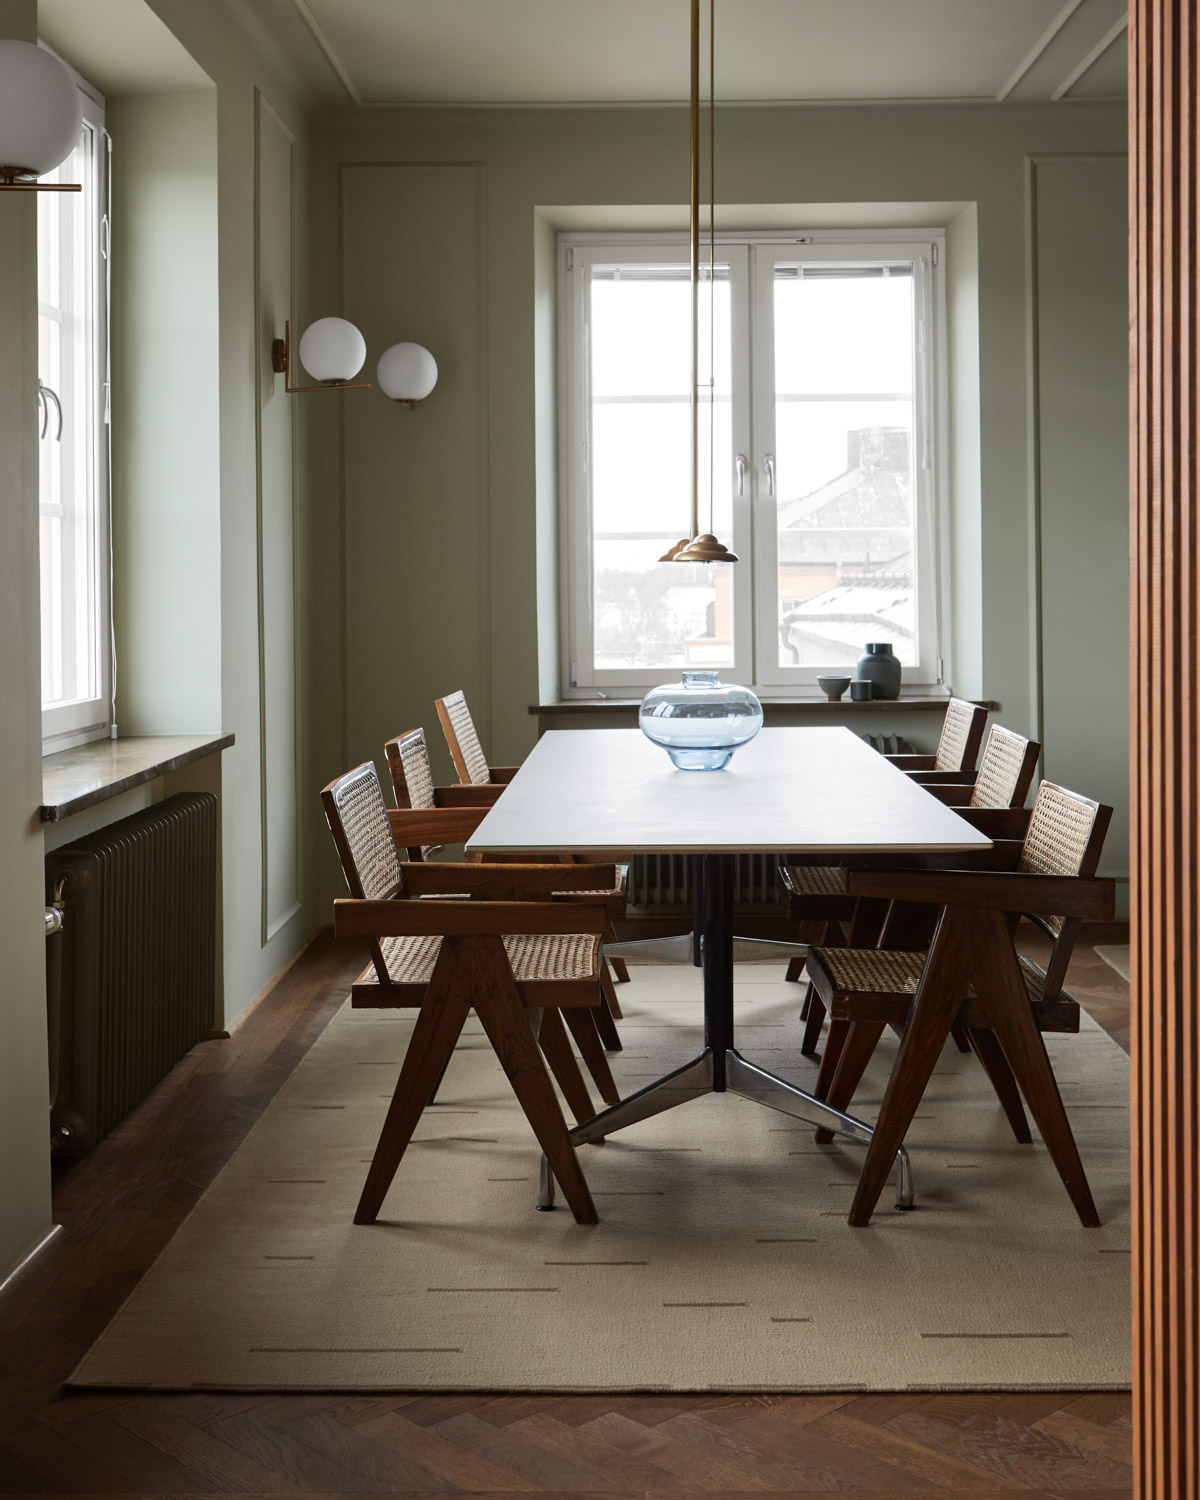 The Rain flat-weave rug in Beige in dining-room with vintage designer chairs